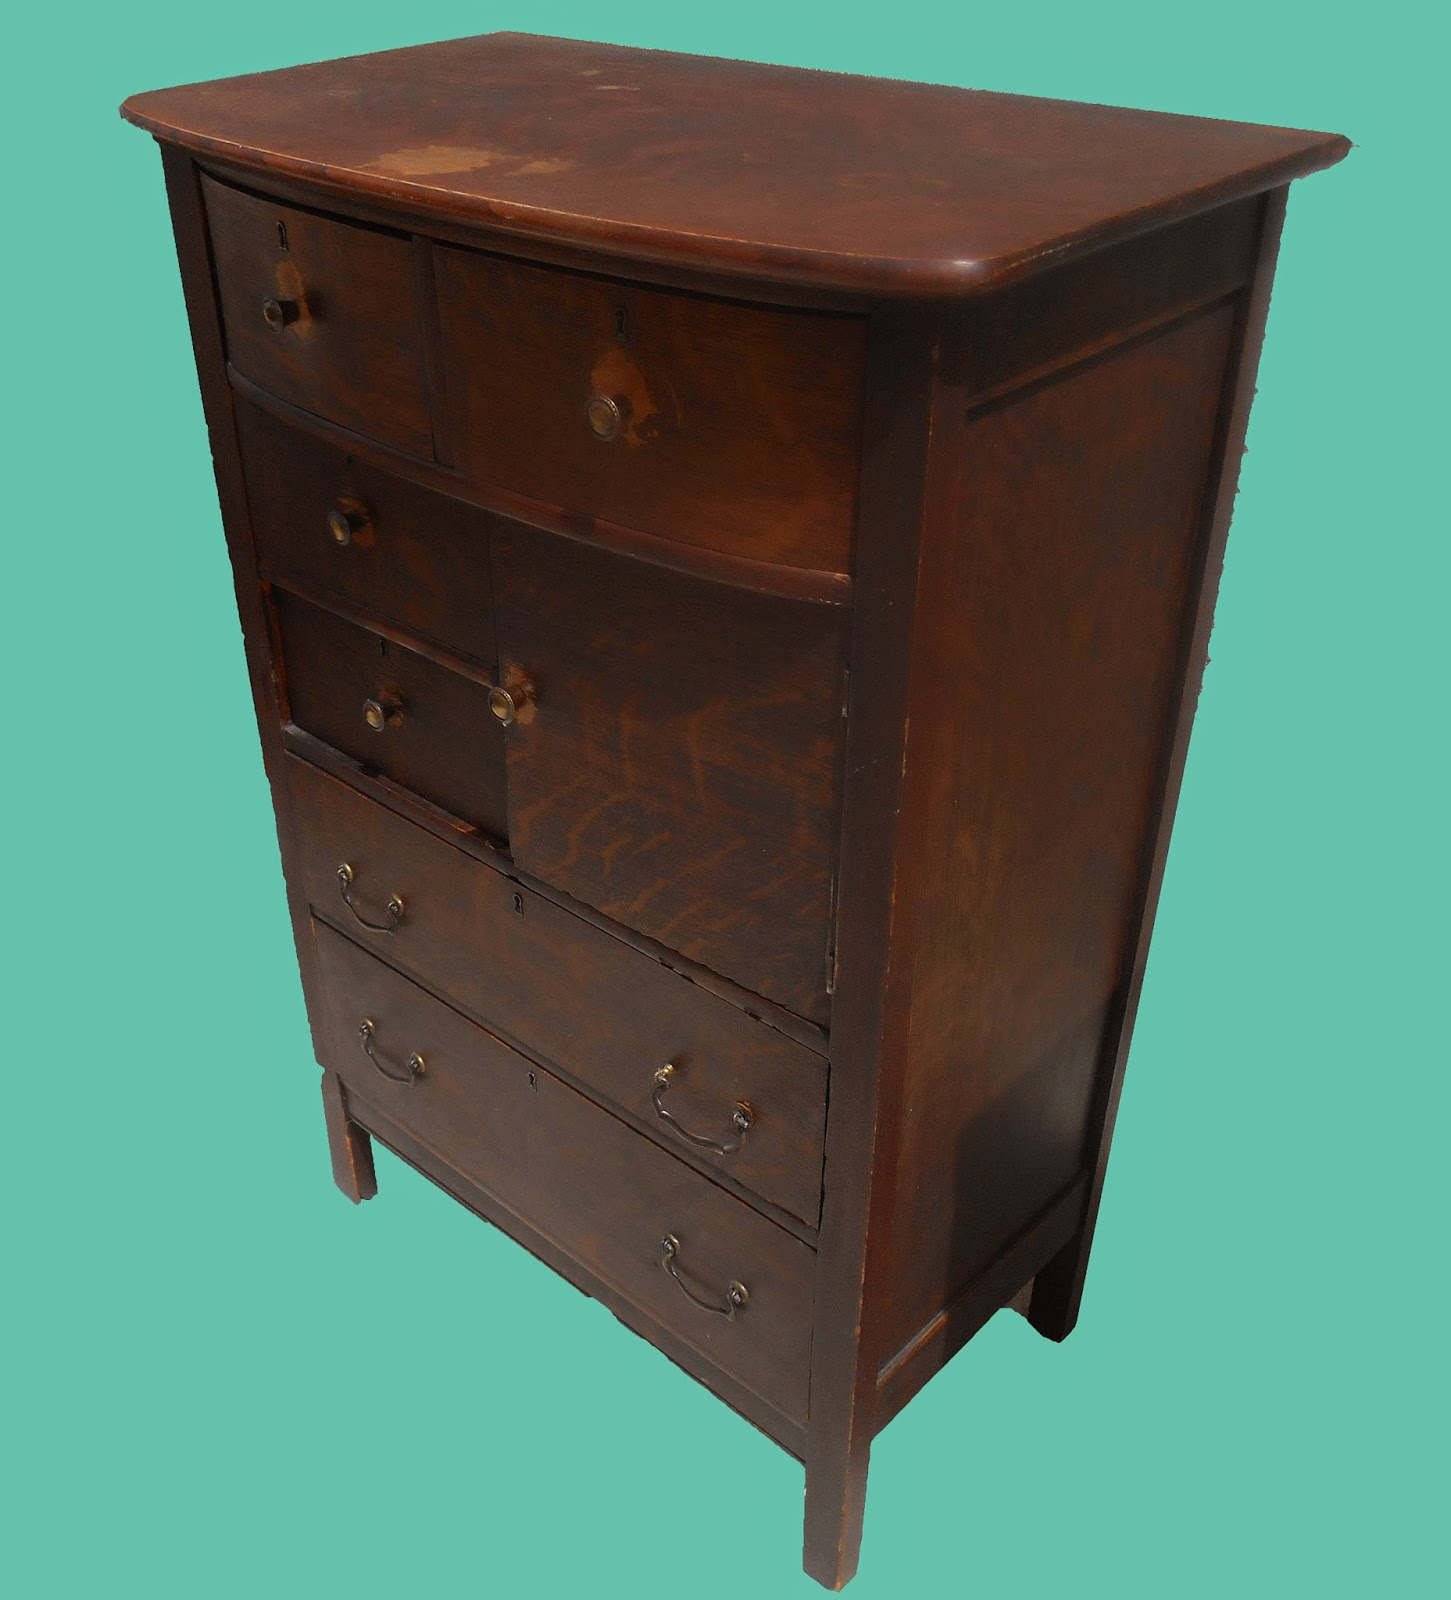 Uhuru furniture collectibles early 1900s oak chest for Reduced furniture